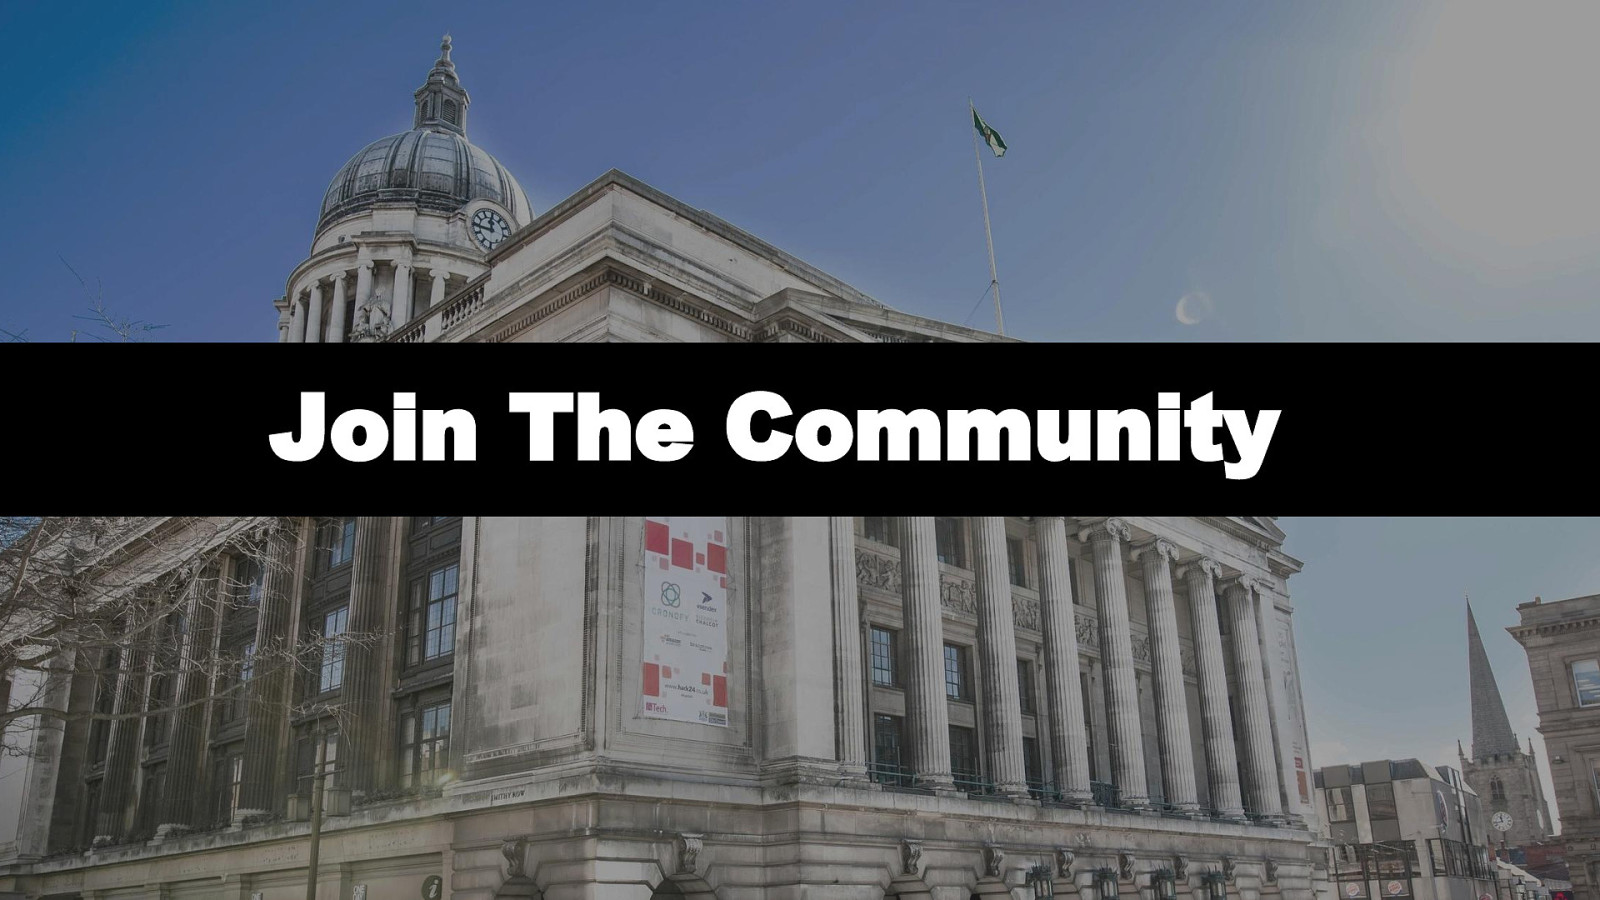 Join the Community